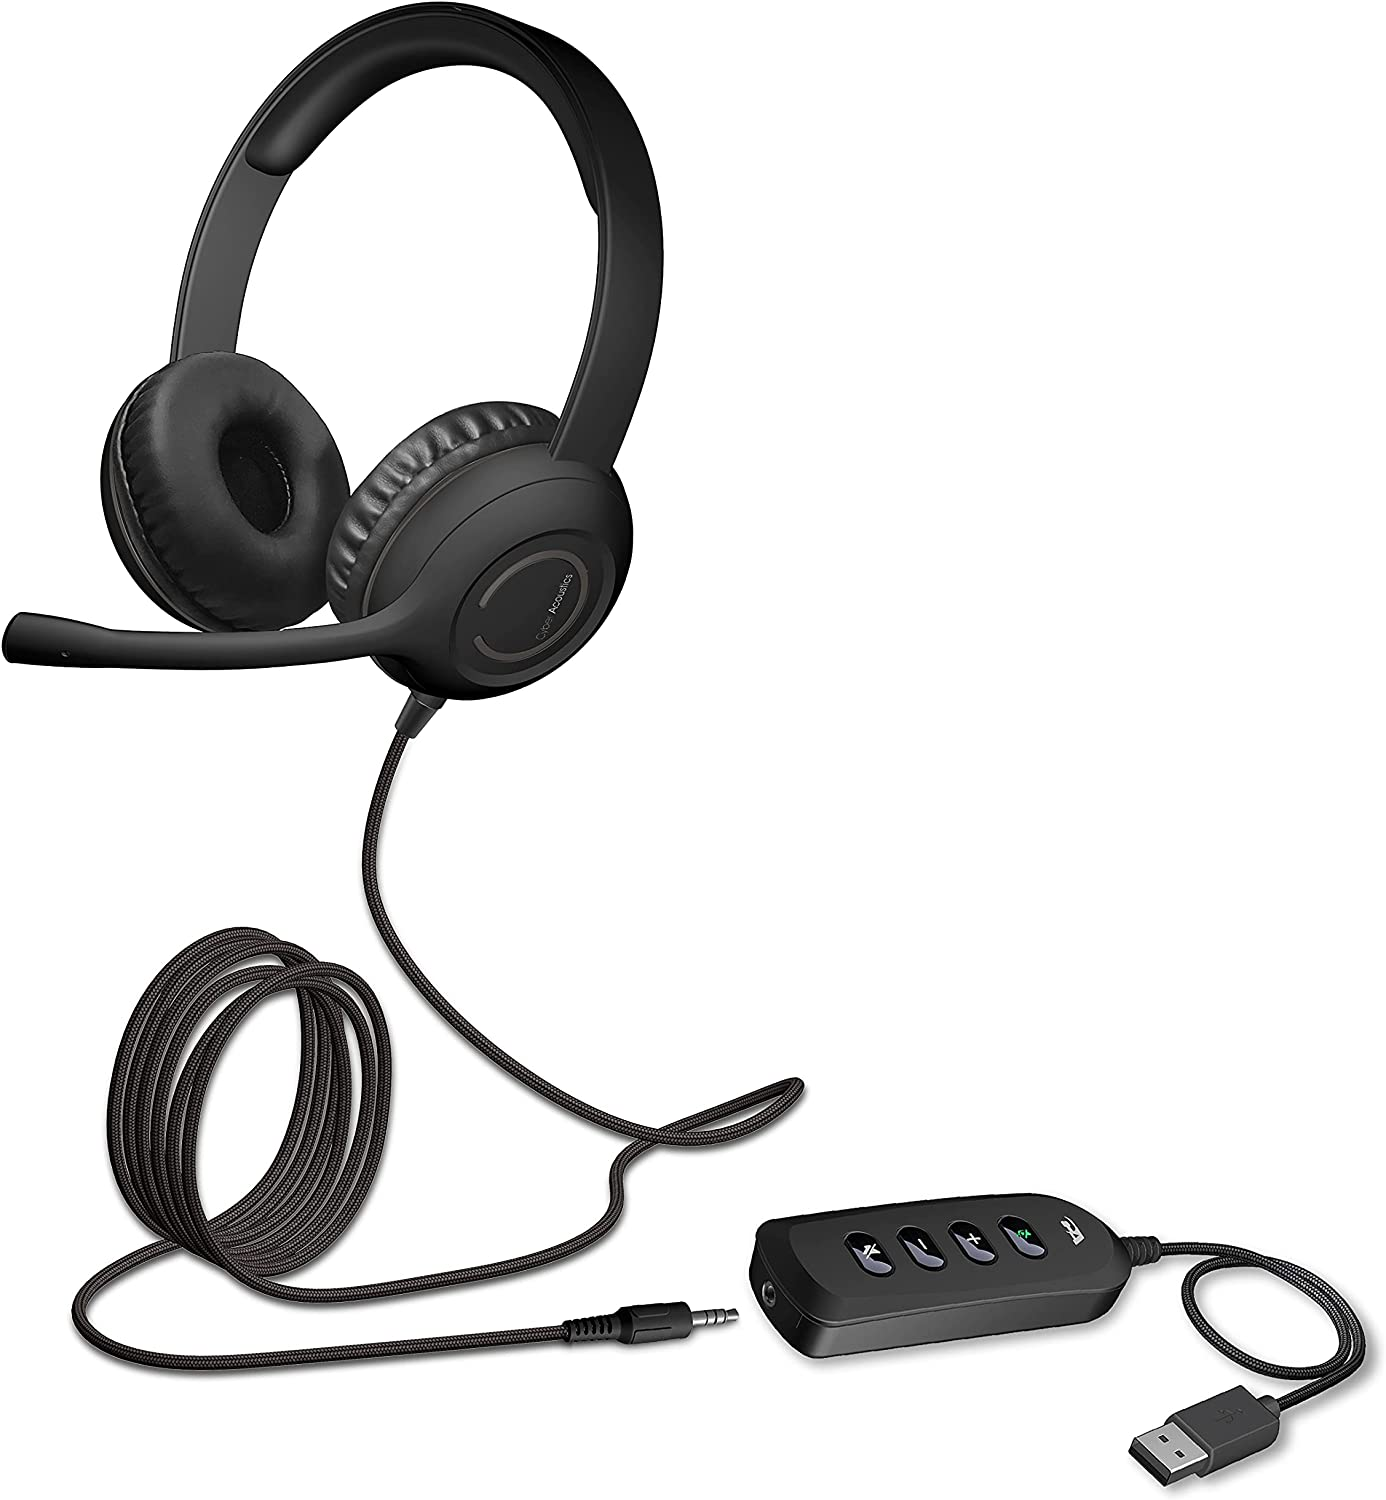 Cyber Acoustics Stereo Headset with USB or 3.5mm Connection, USB Control Module, Noise Cancelling Mic & Adjustable Mic Boom for PC and Mac, Classroom, Home or Office (AC-5812)